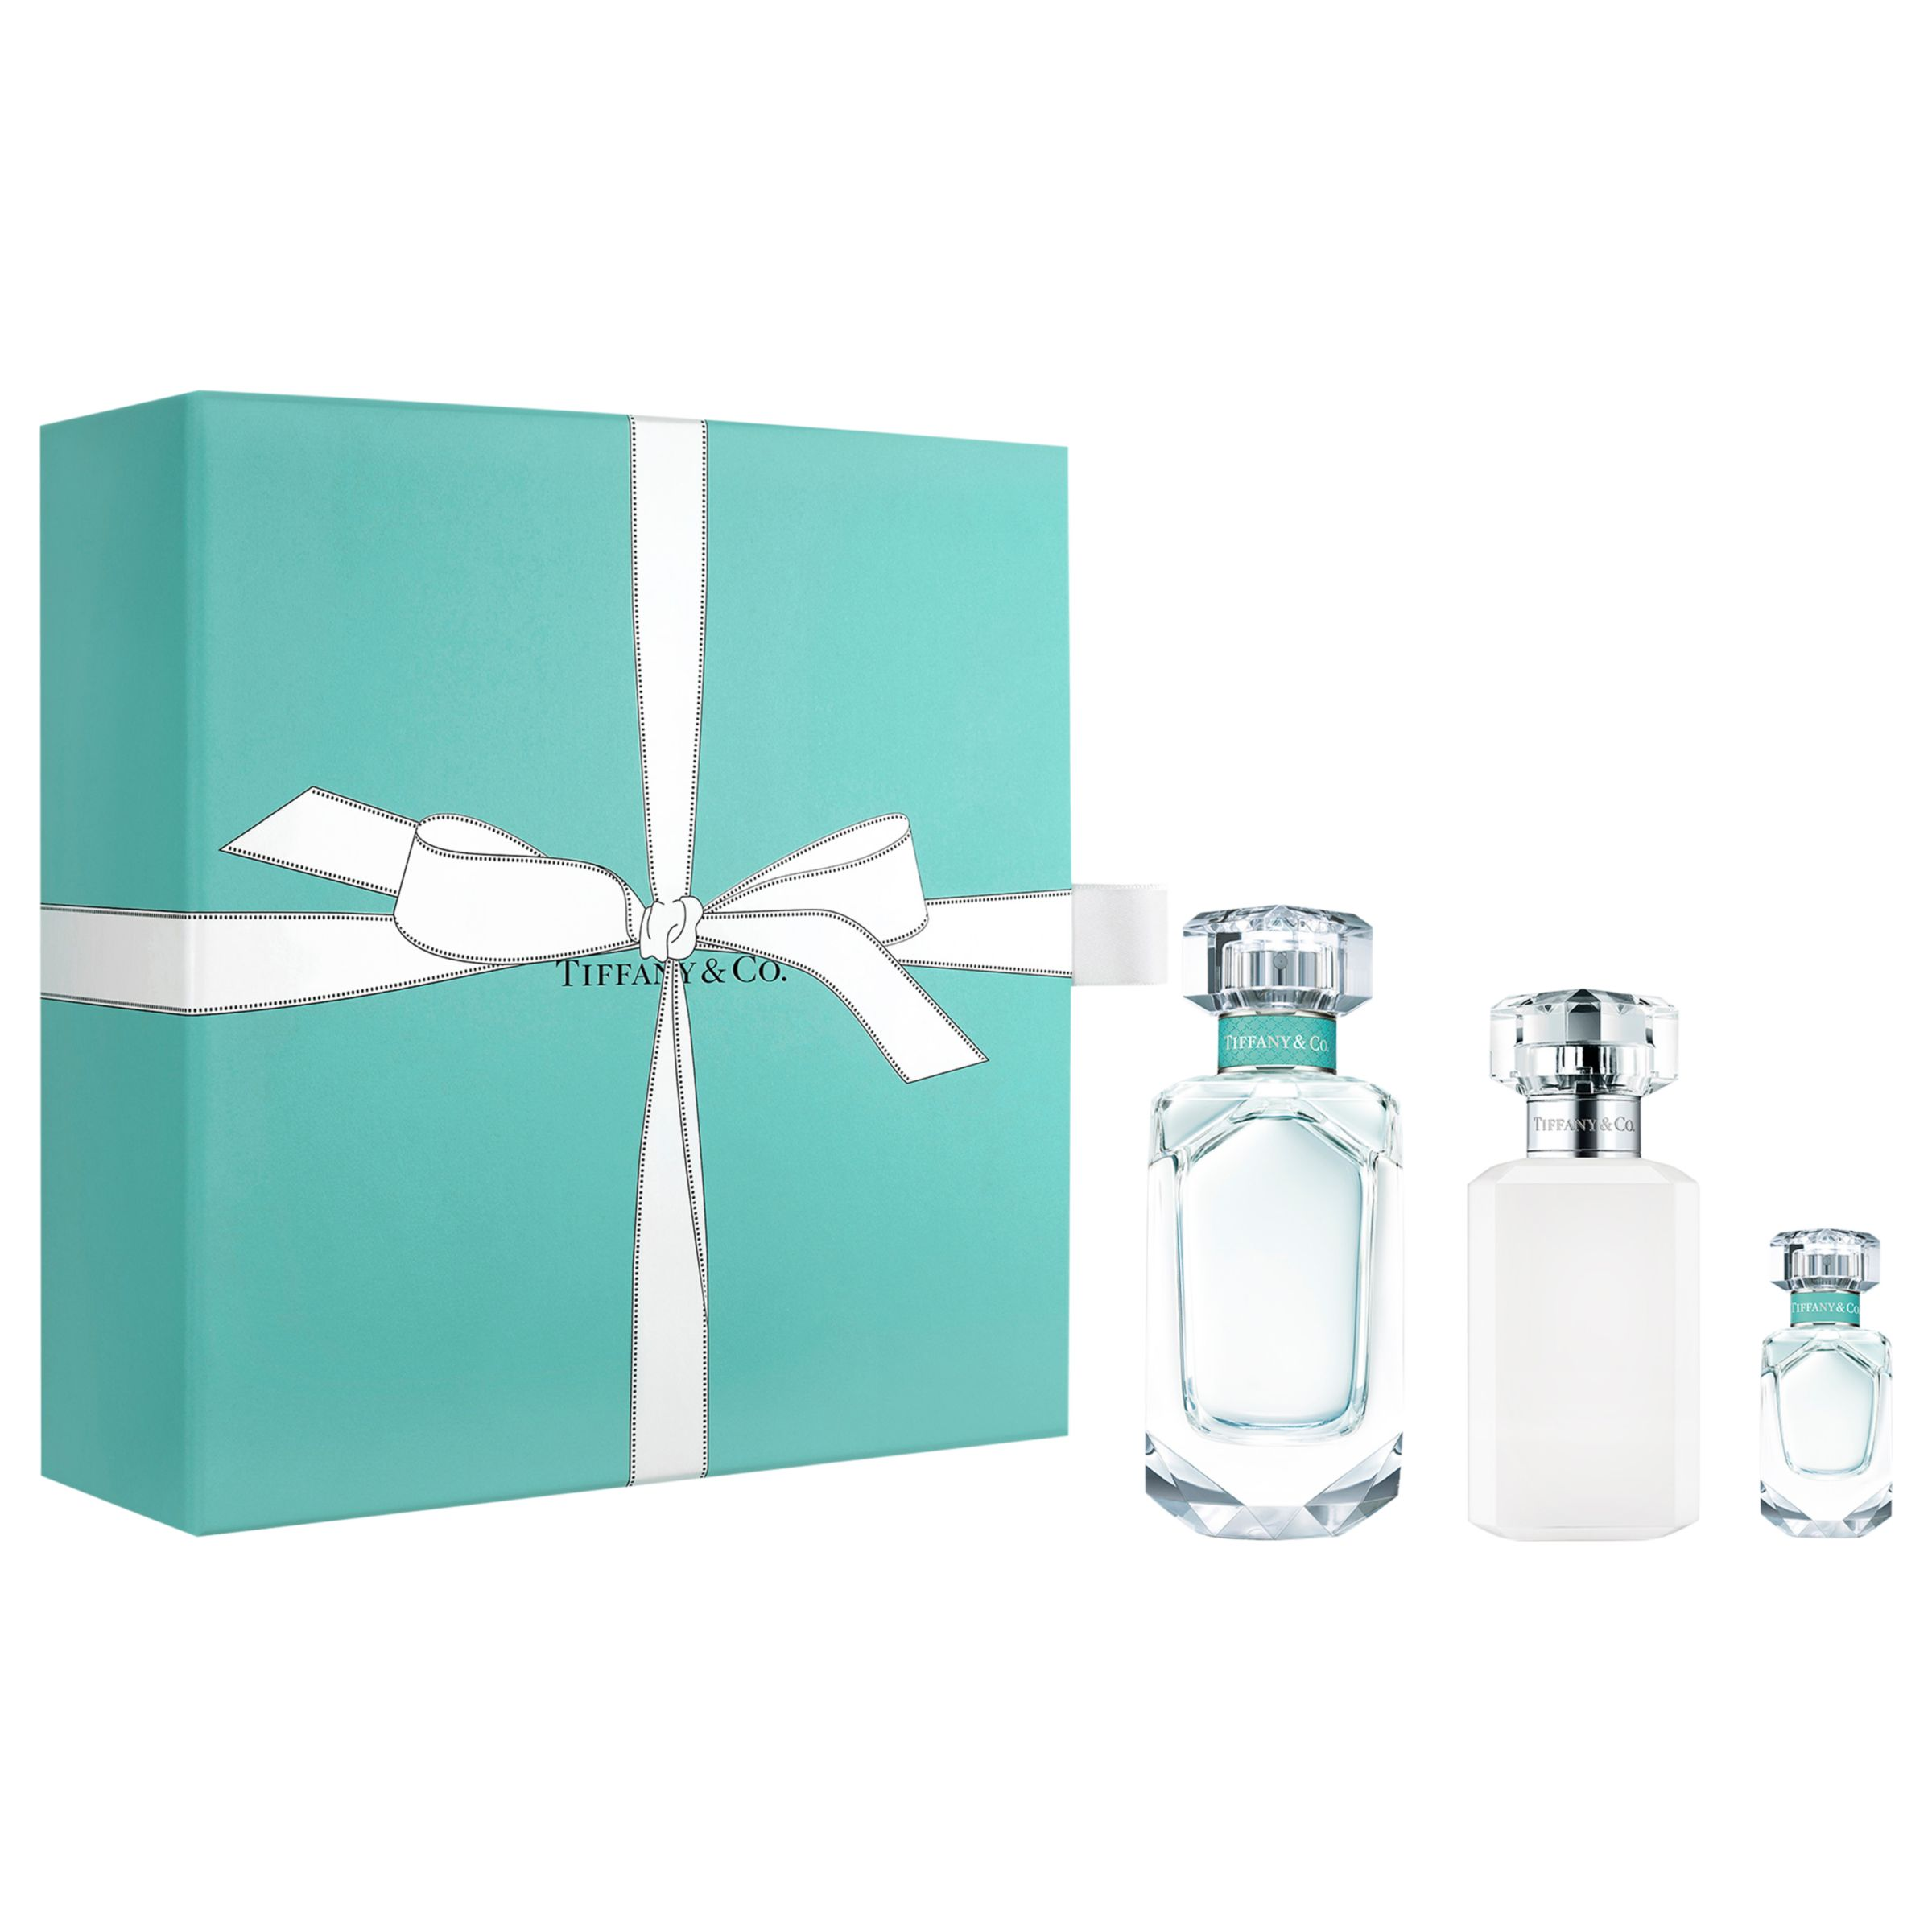 Tiffany Co 75ml Eau De Parfum Fragrance Gift Set At John Lewis Partners